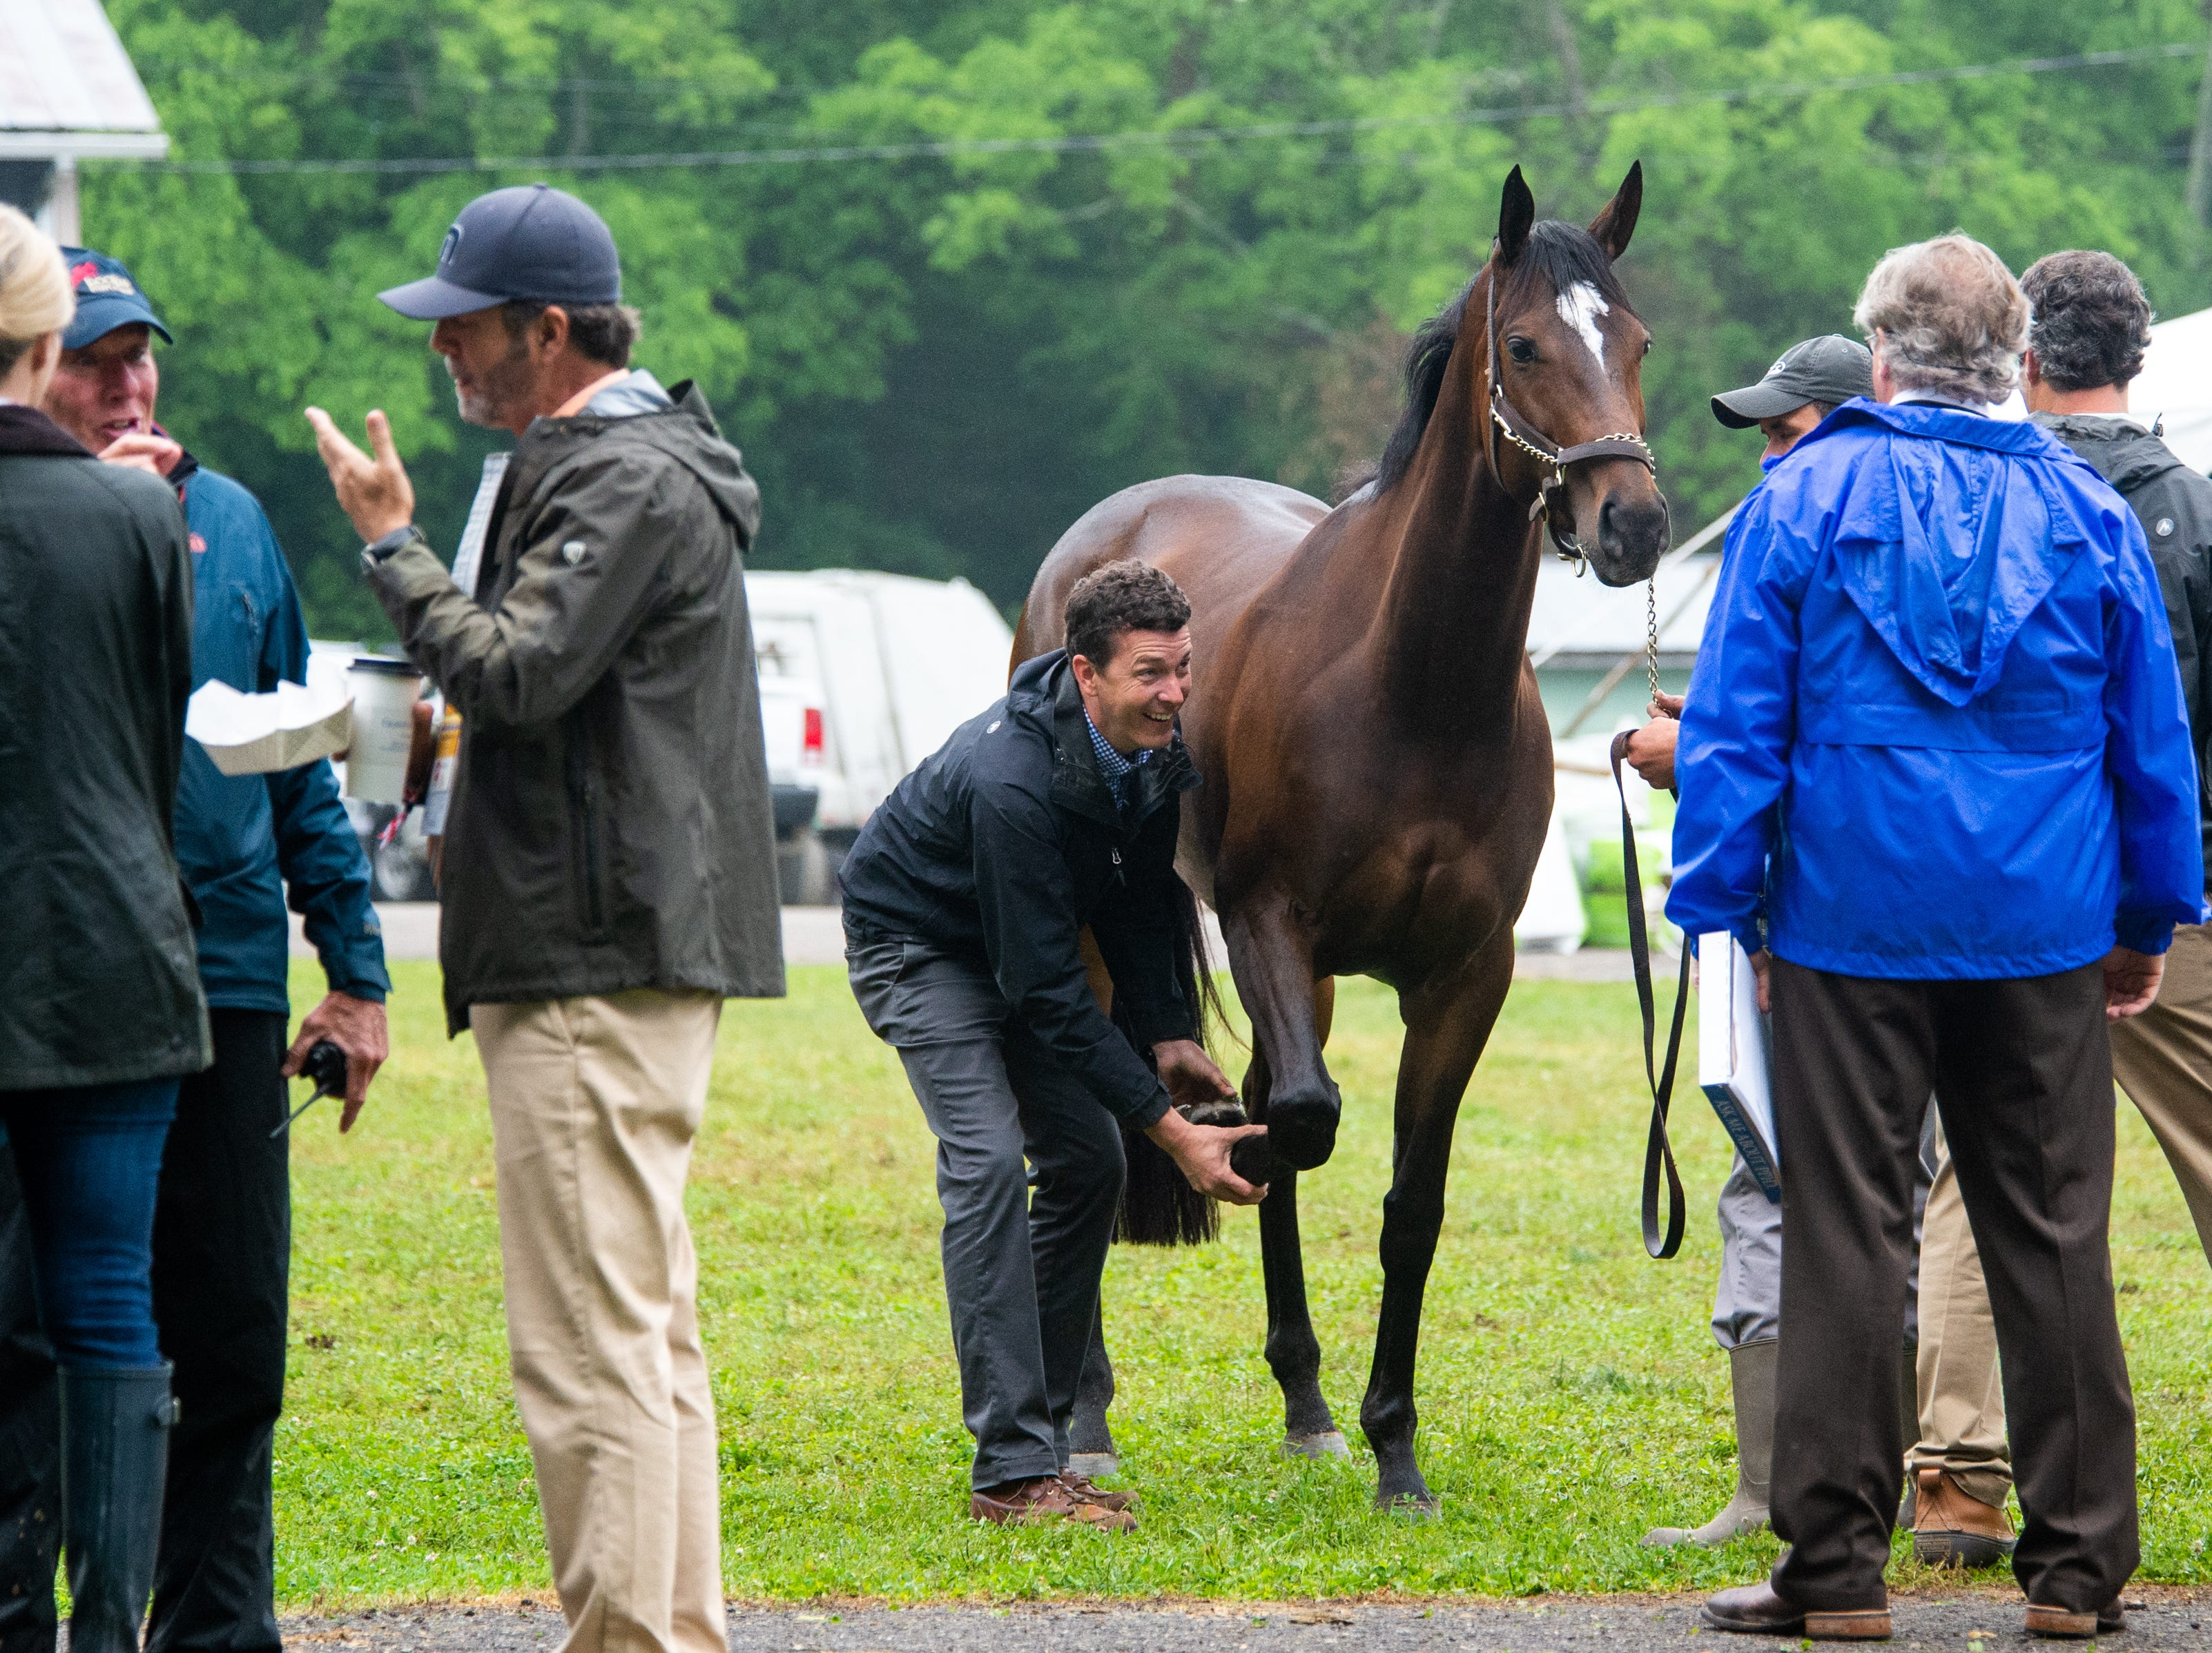 People examine a horse during the Iroquois Steeplechase at Percy Warner Park Saturday, May 11, 2019, in Nashville, Tenn.